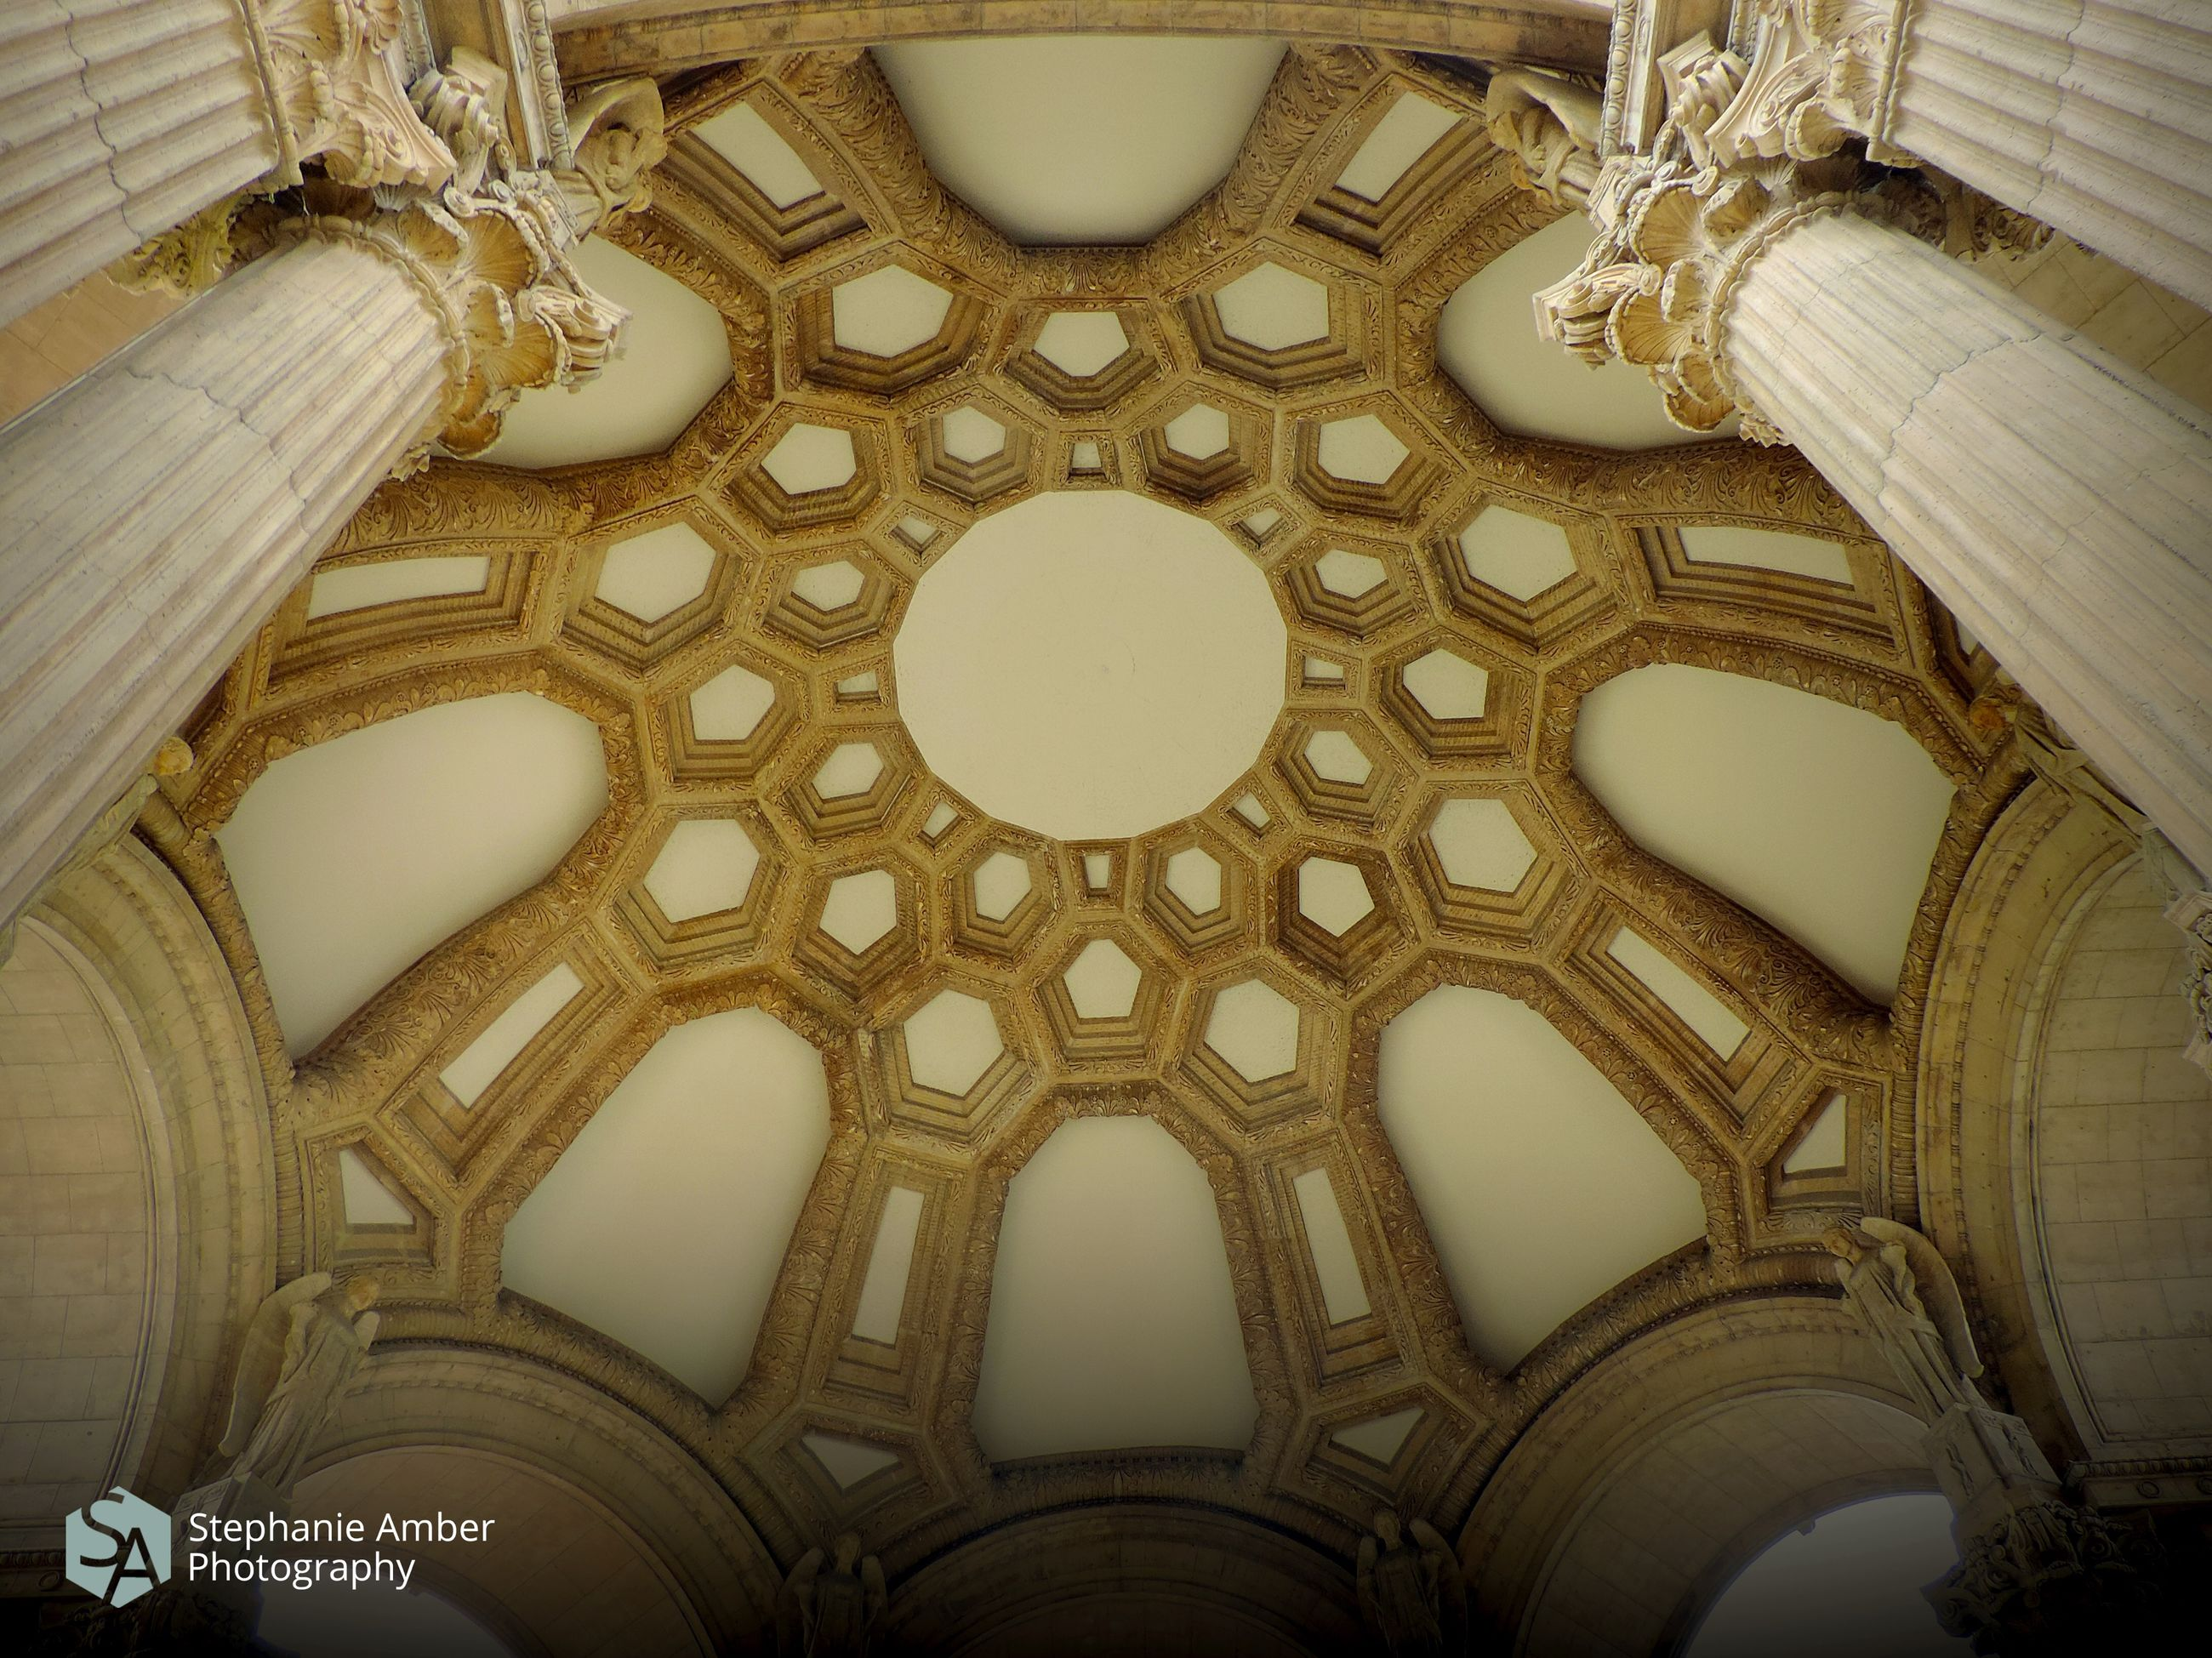 ceiling, architecture, low angle view, built structure, indoors, building, no people, cupola, travel destinations, the past, arch, history, place of worship, pattern, religion, architectural feature, belief, design, dome, directly below, ornate, architecture and art, architectural column, luxury